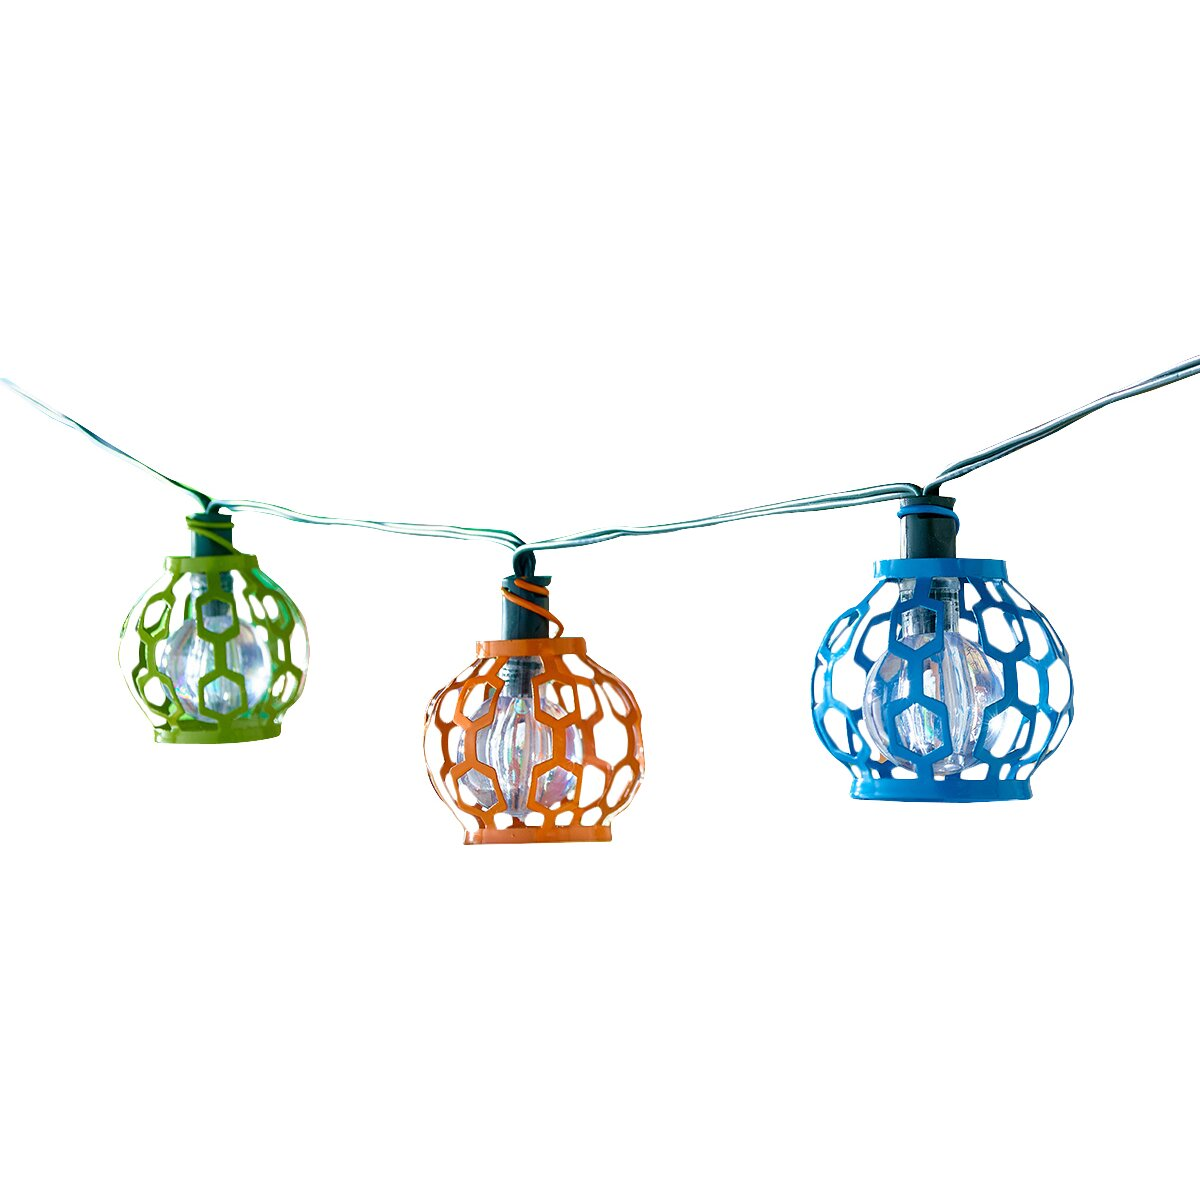 Smart Solar Solar 20-Light 5.5 Ft. Globe String Lights